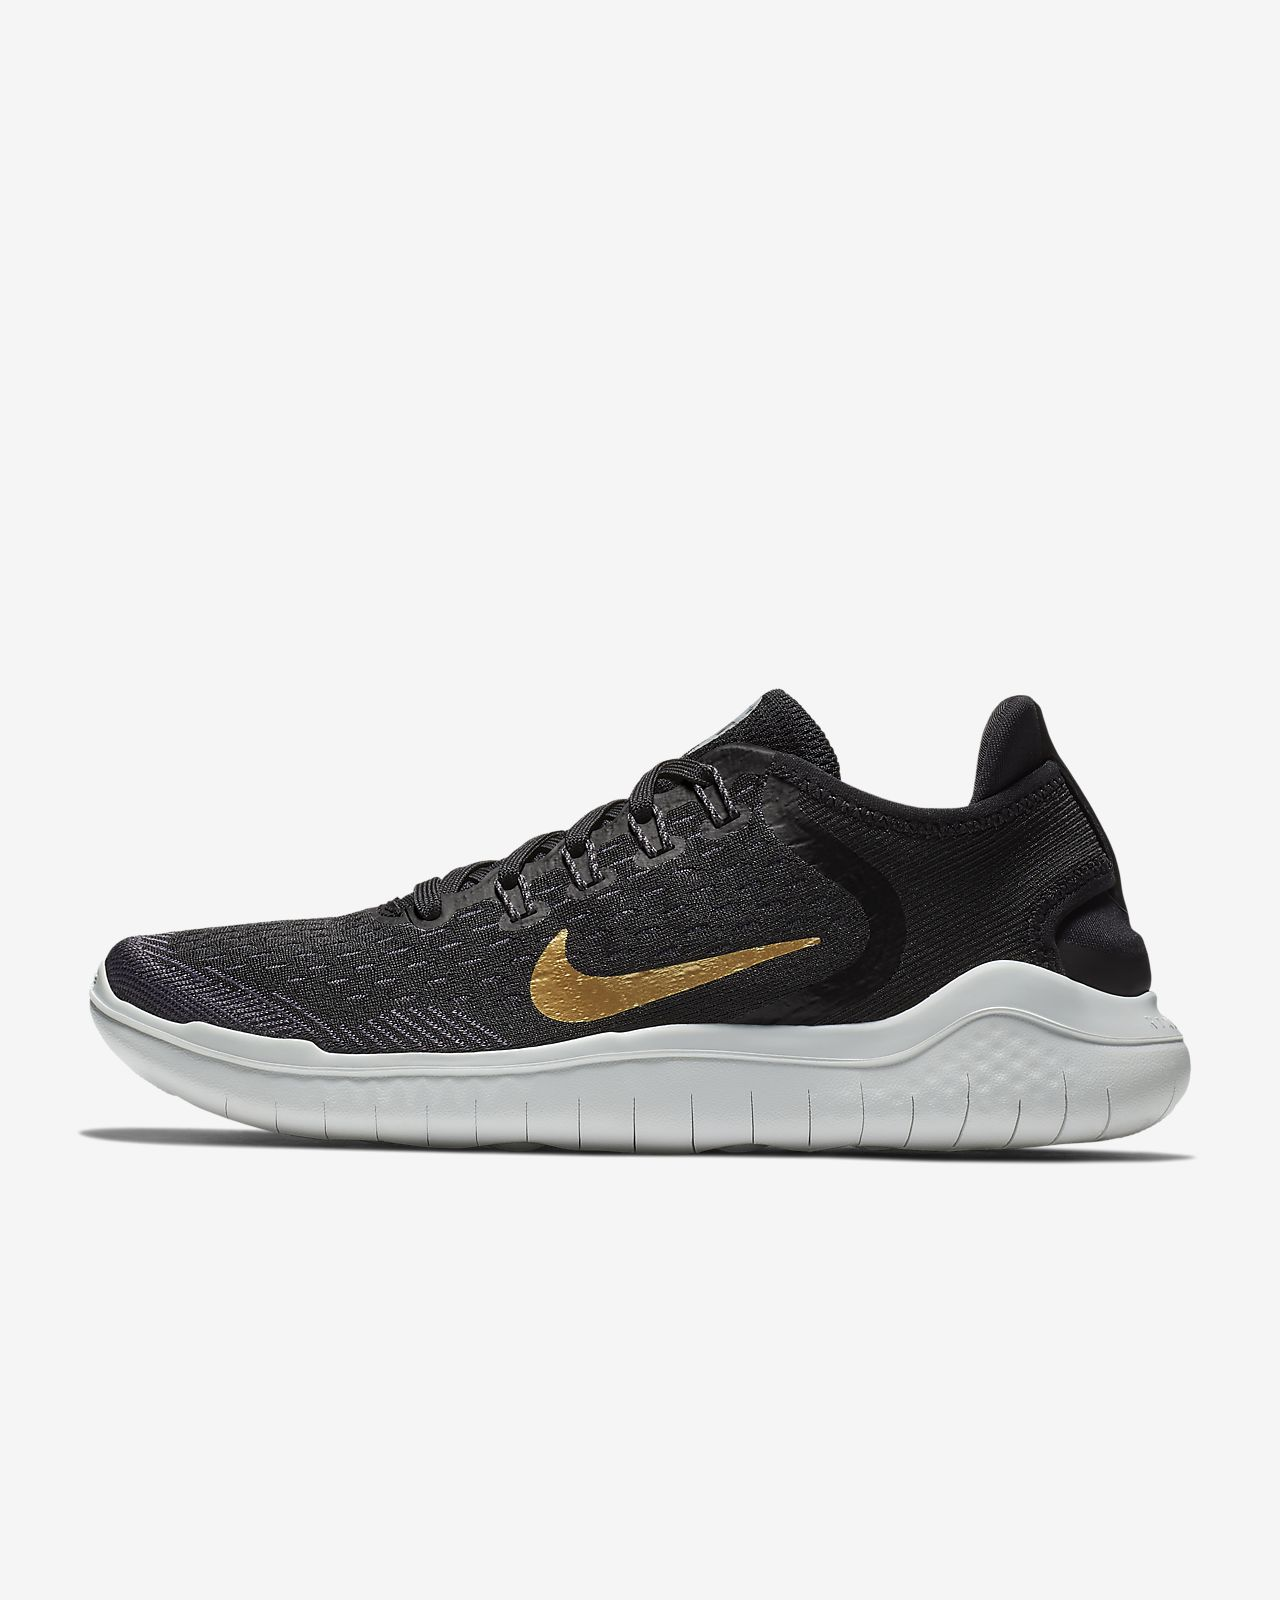 premium selection 72903 7acc2 Nike Free RN 2018 Women's Running Shoe. Nike.com